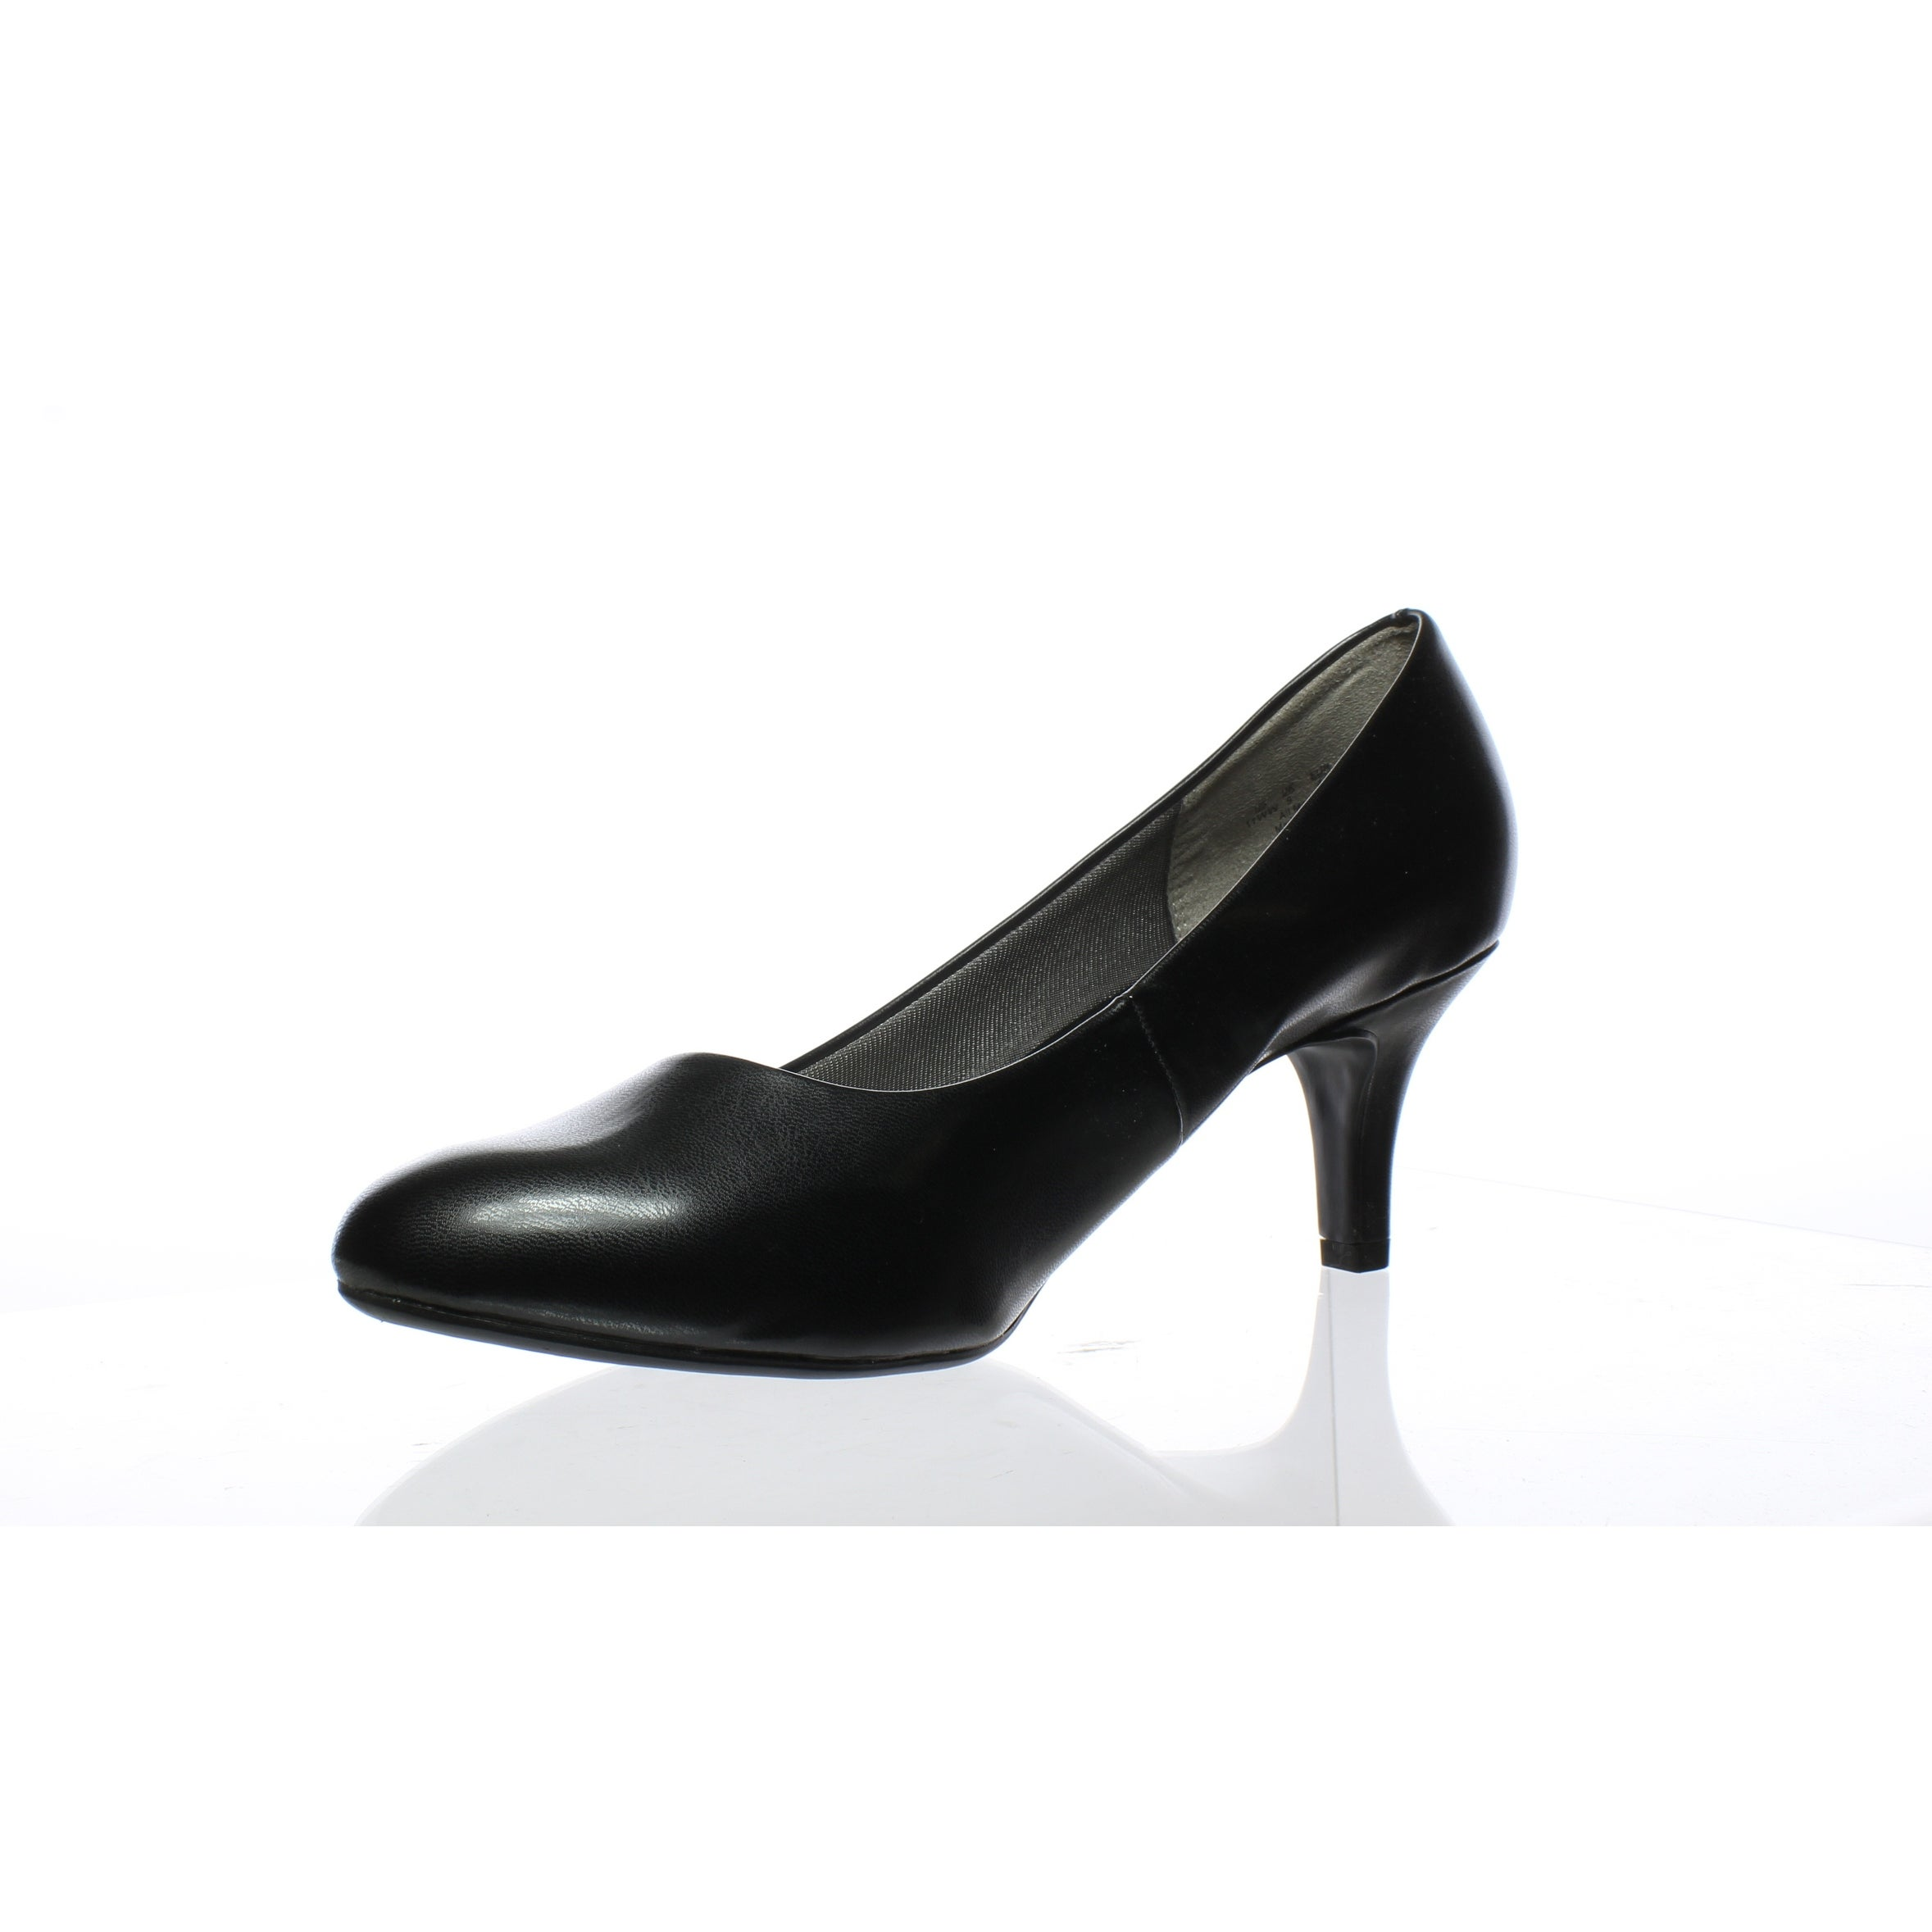 a1243b7f382 Shop LifeStride Womens Parigi Black Pumps Size 11 (2E) - Free Shipping On  Orders Over  45 - Overstock - 24304190